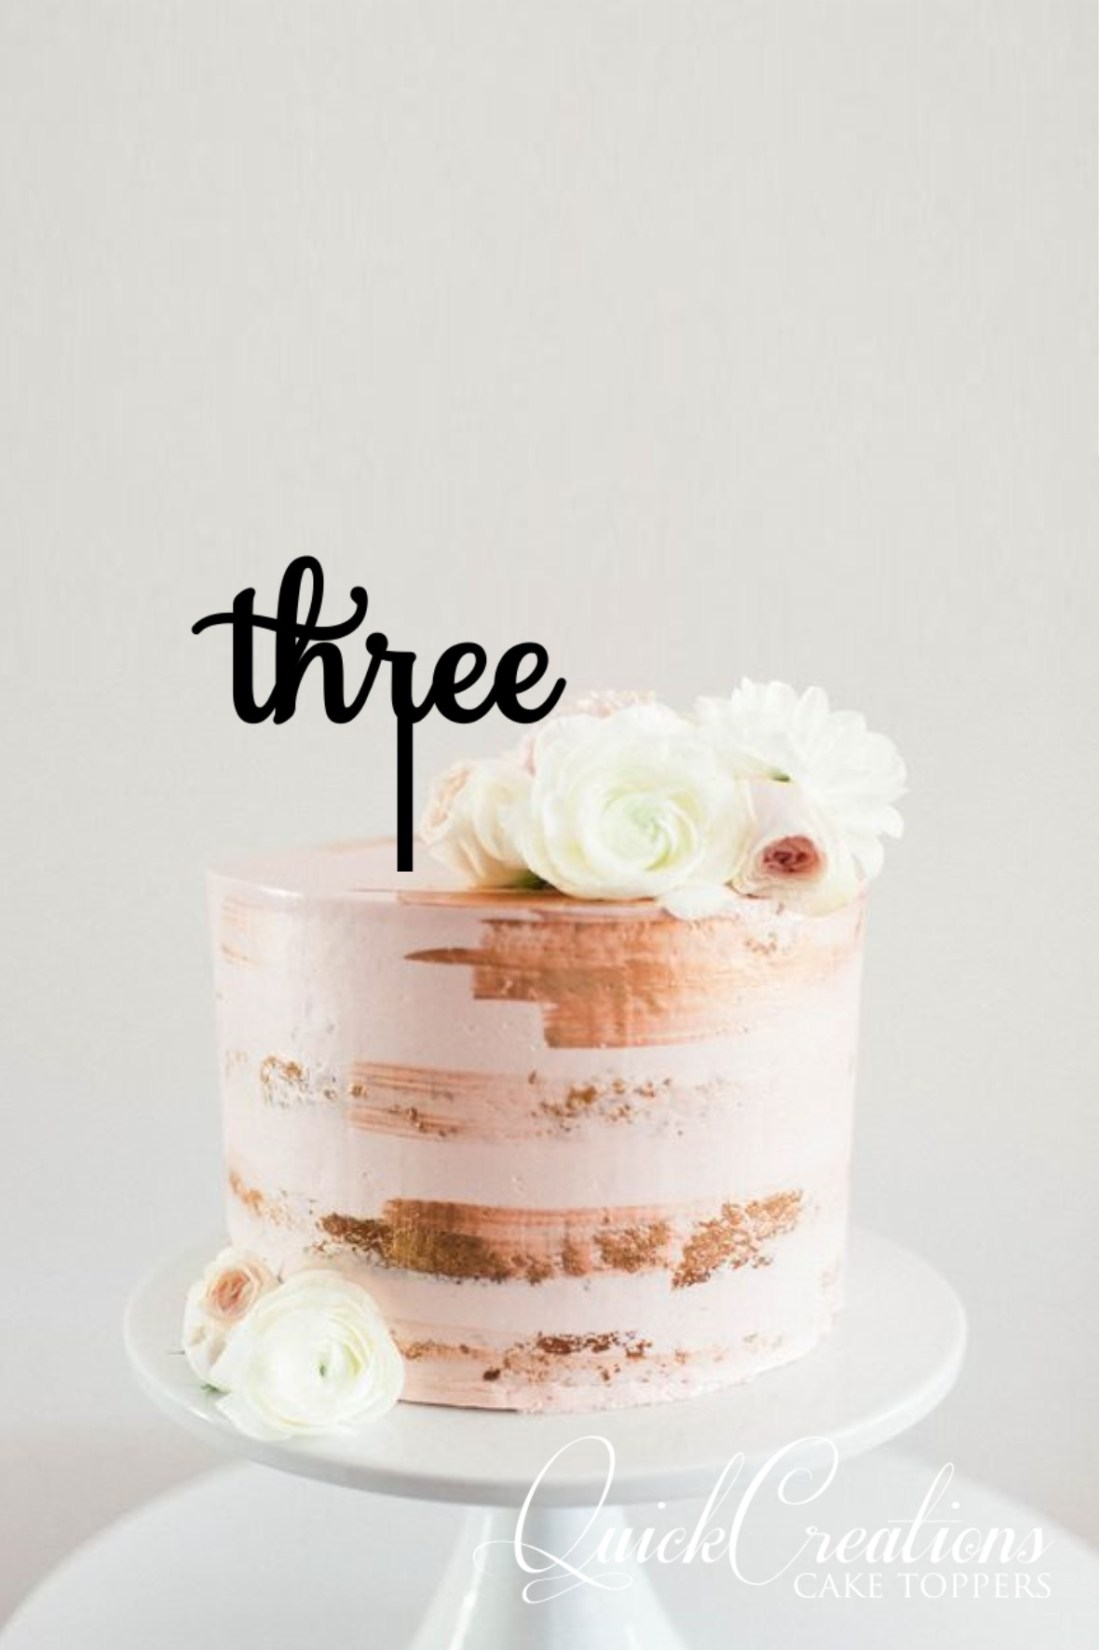 Quick Creations Cake Topper - Three